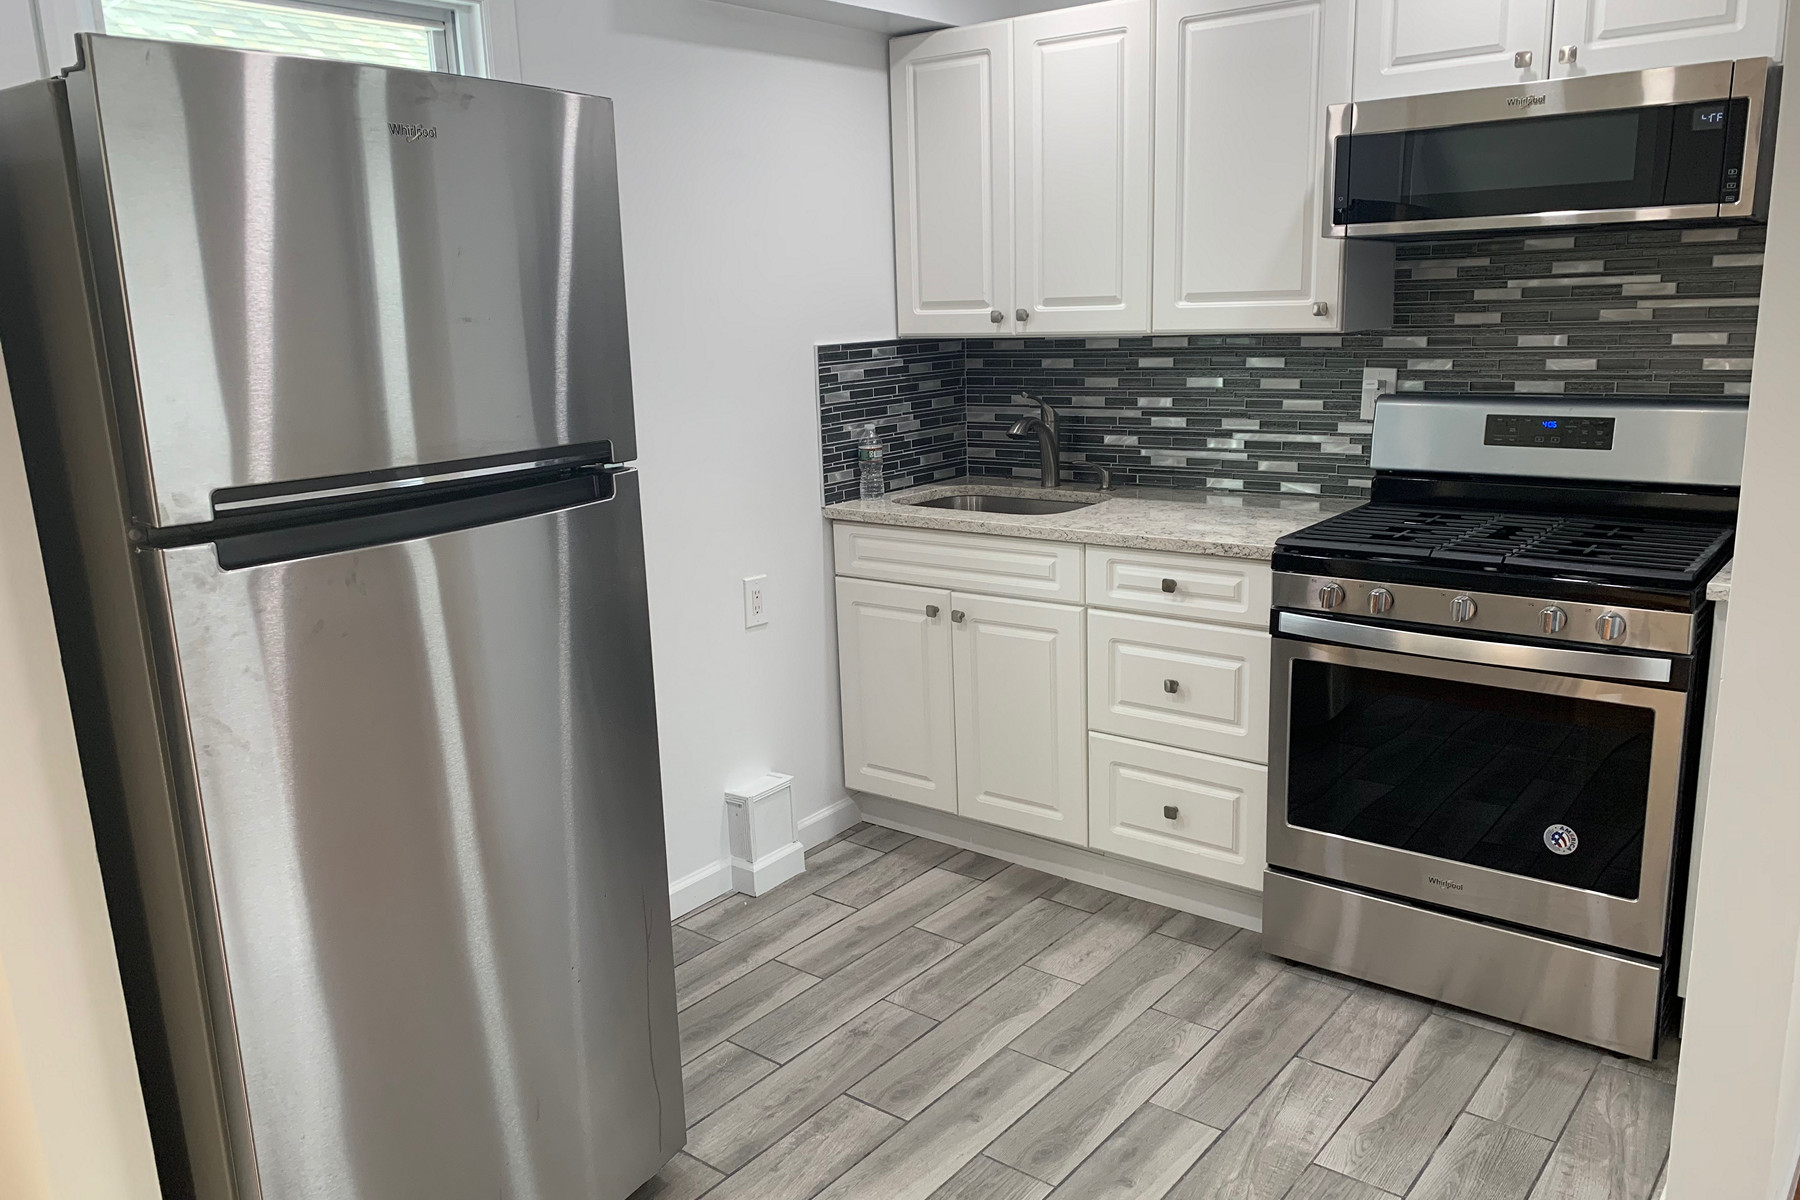 Multi-Family Home for Rent at Renovated Apartment 123 Eagle Avenue, New Milford, New Jersey 07646 United States